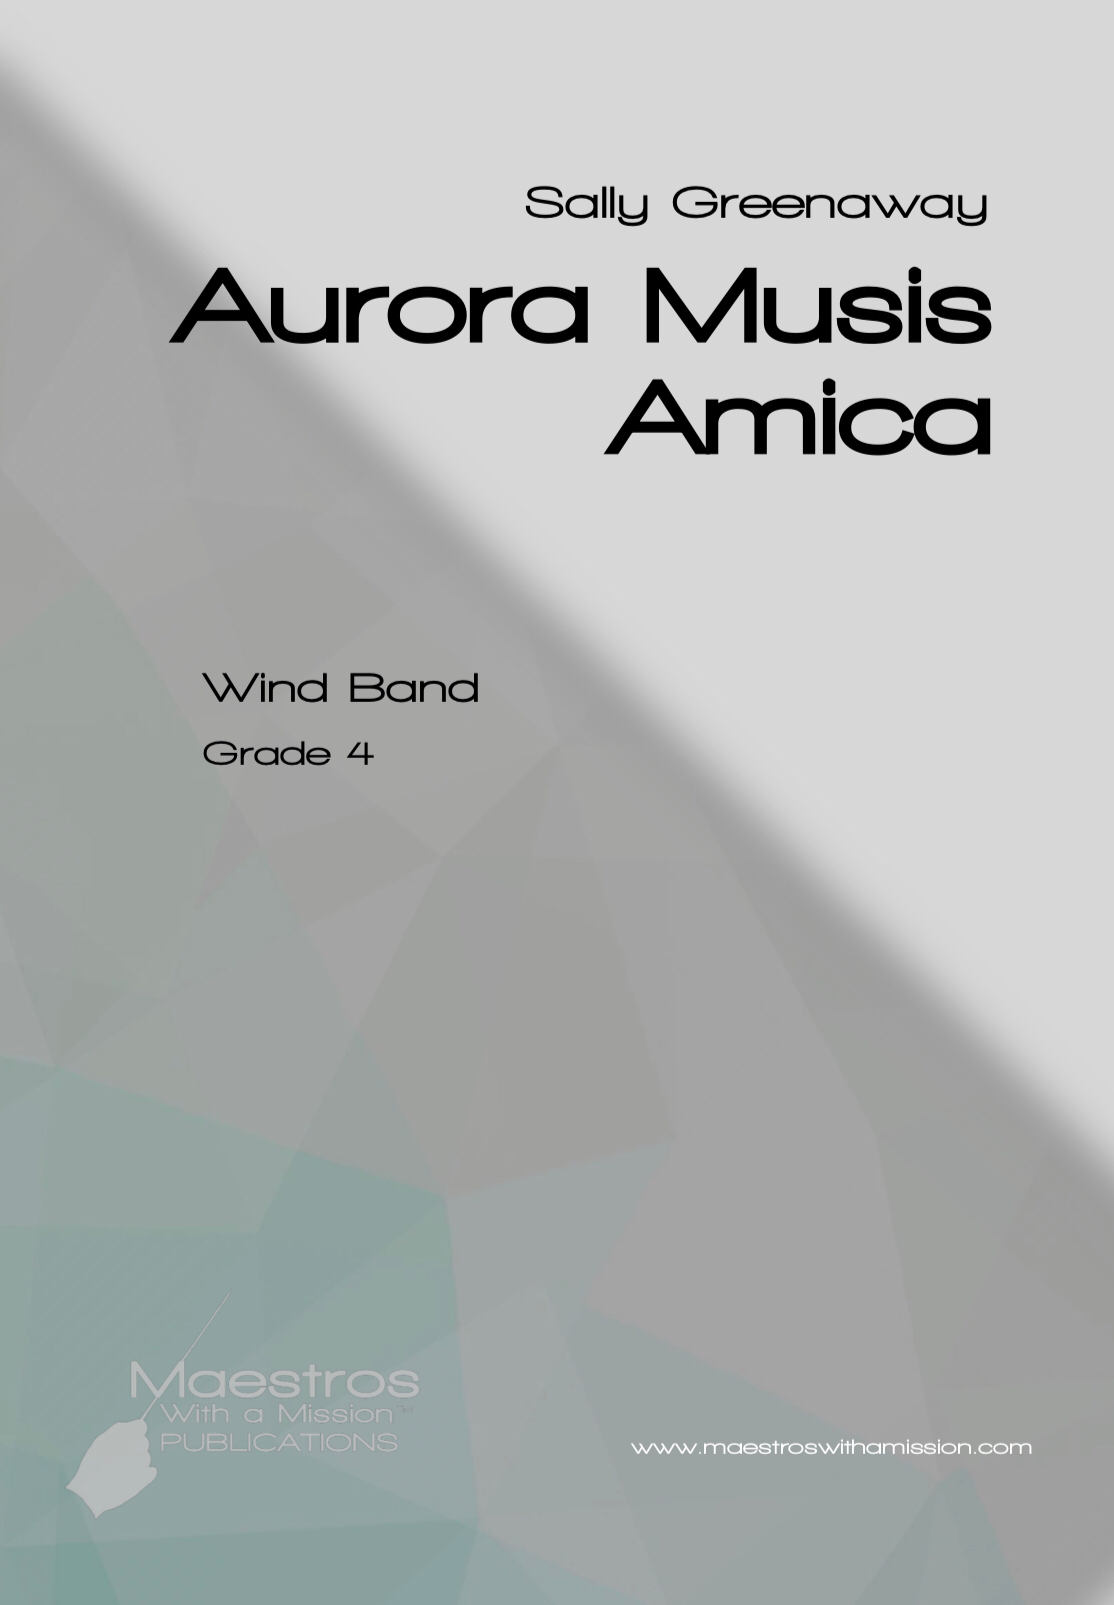 Aurora Musis Amica by Sally Greenaway